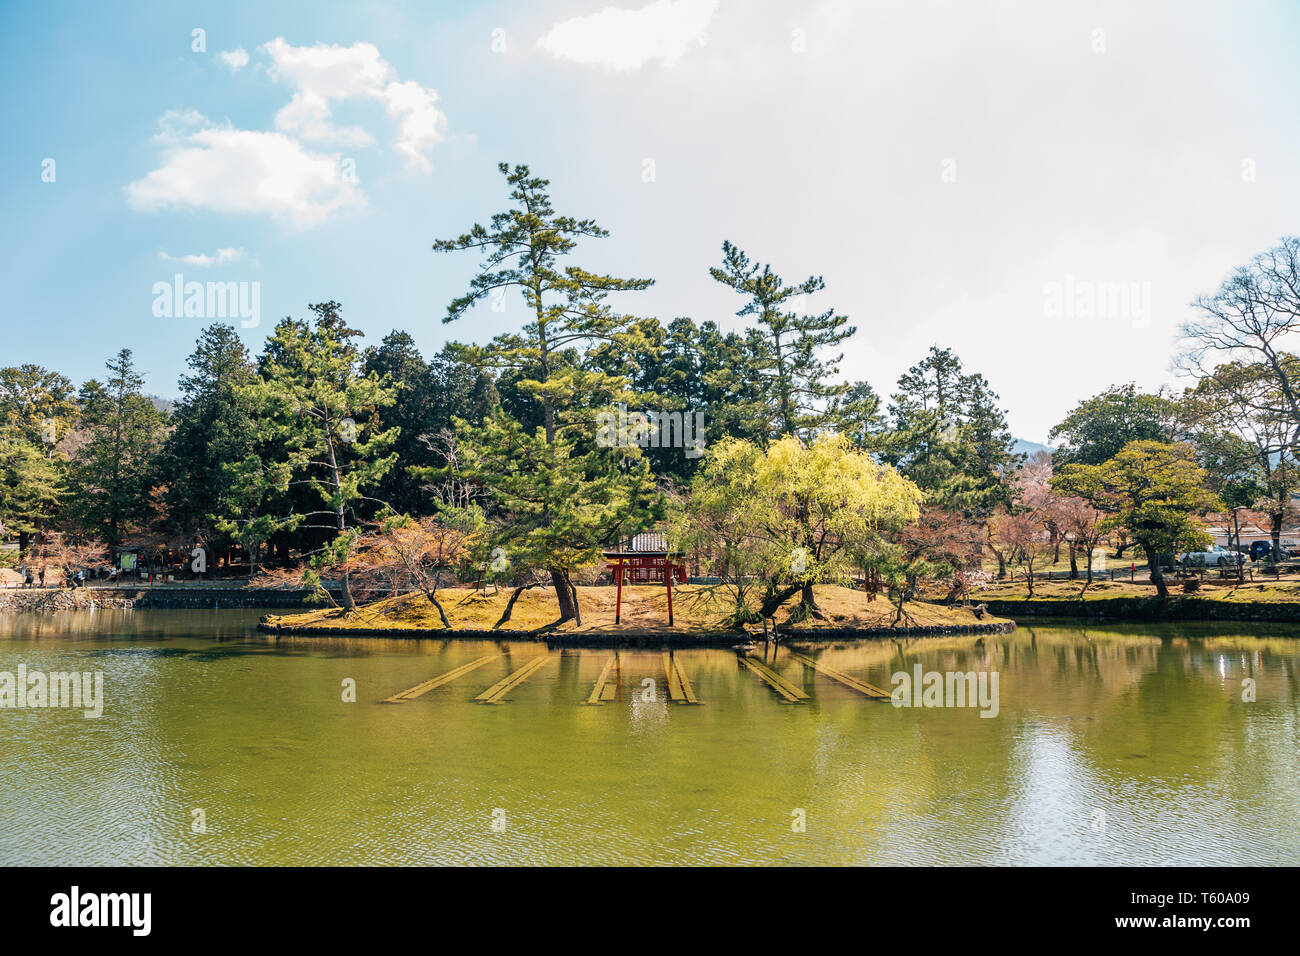 Torii gate on pond at Todai-ji temple in Nara, Japan - Stock Image